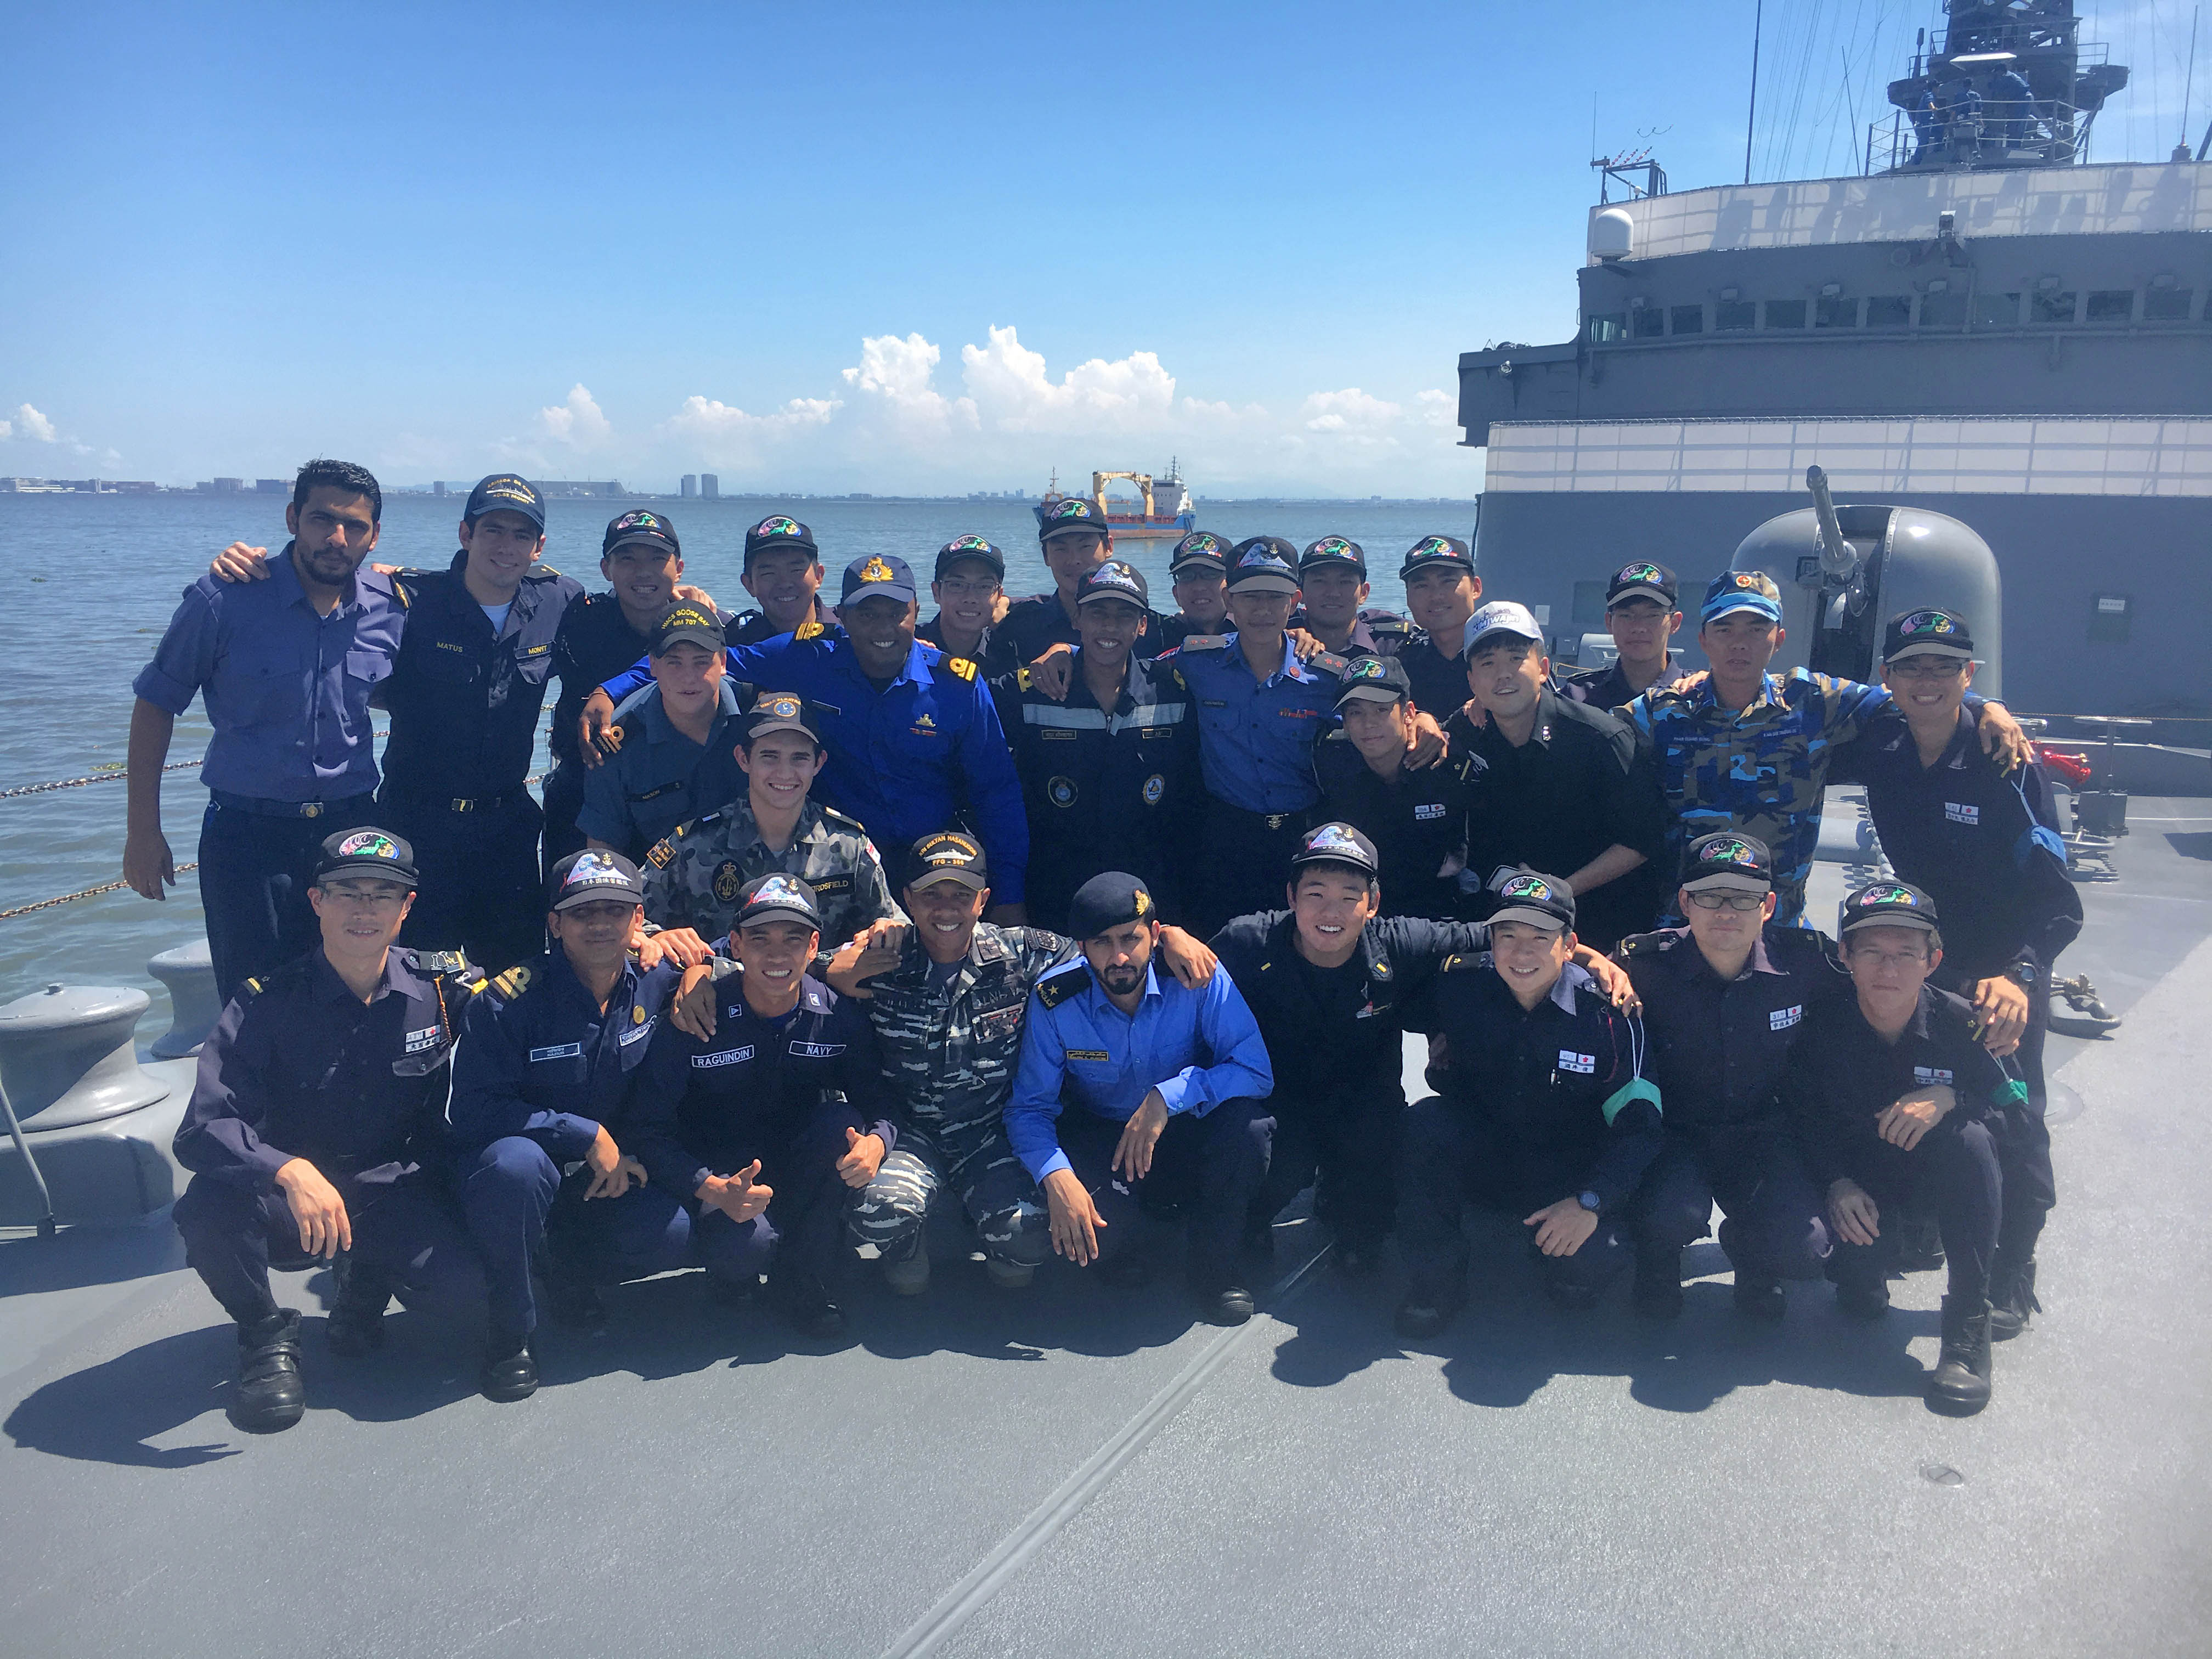 Junior officers representing allied international navies pose for a group photo on the deck of Japanese Ship (JS) Kashima during Op REGULUS. SLt Ben Mason from HMCS Scotian is located at the far left side of the middle rows.